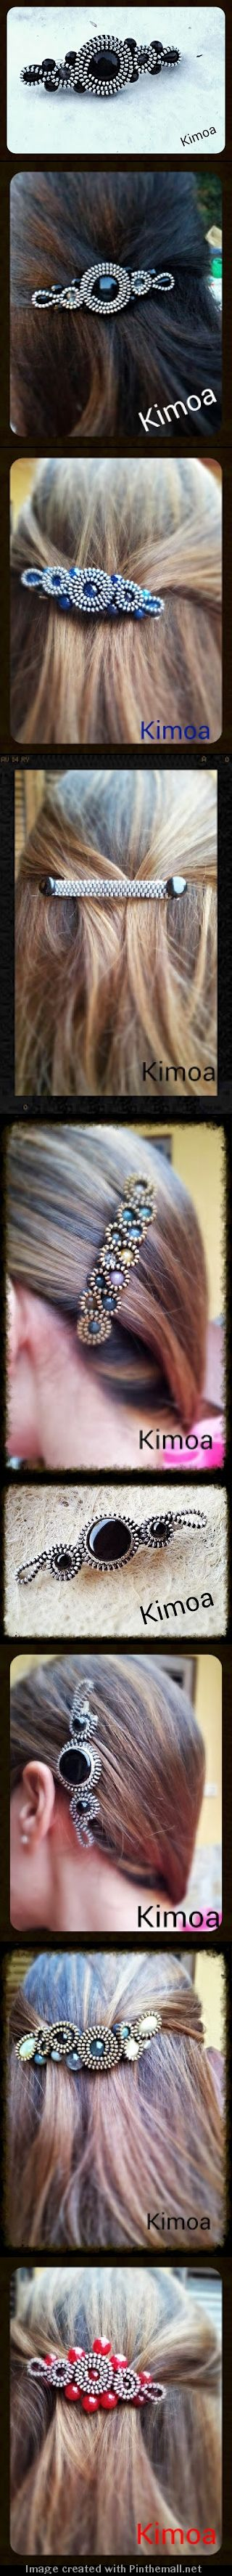 Awesome zipper hair clips! #DIY #inspiration #jewelry